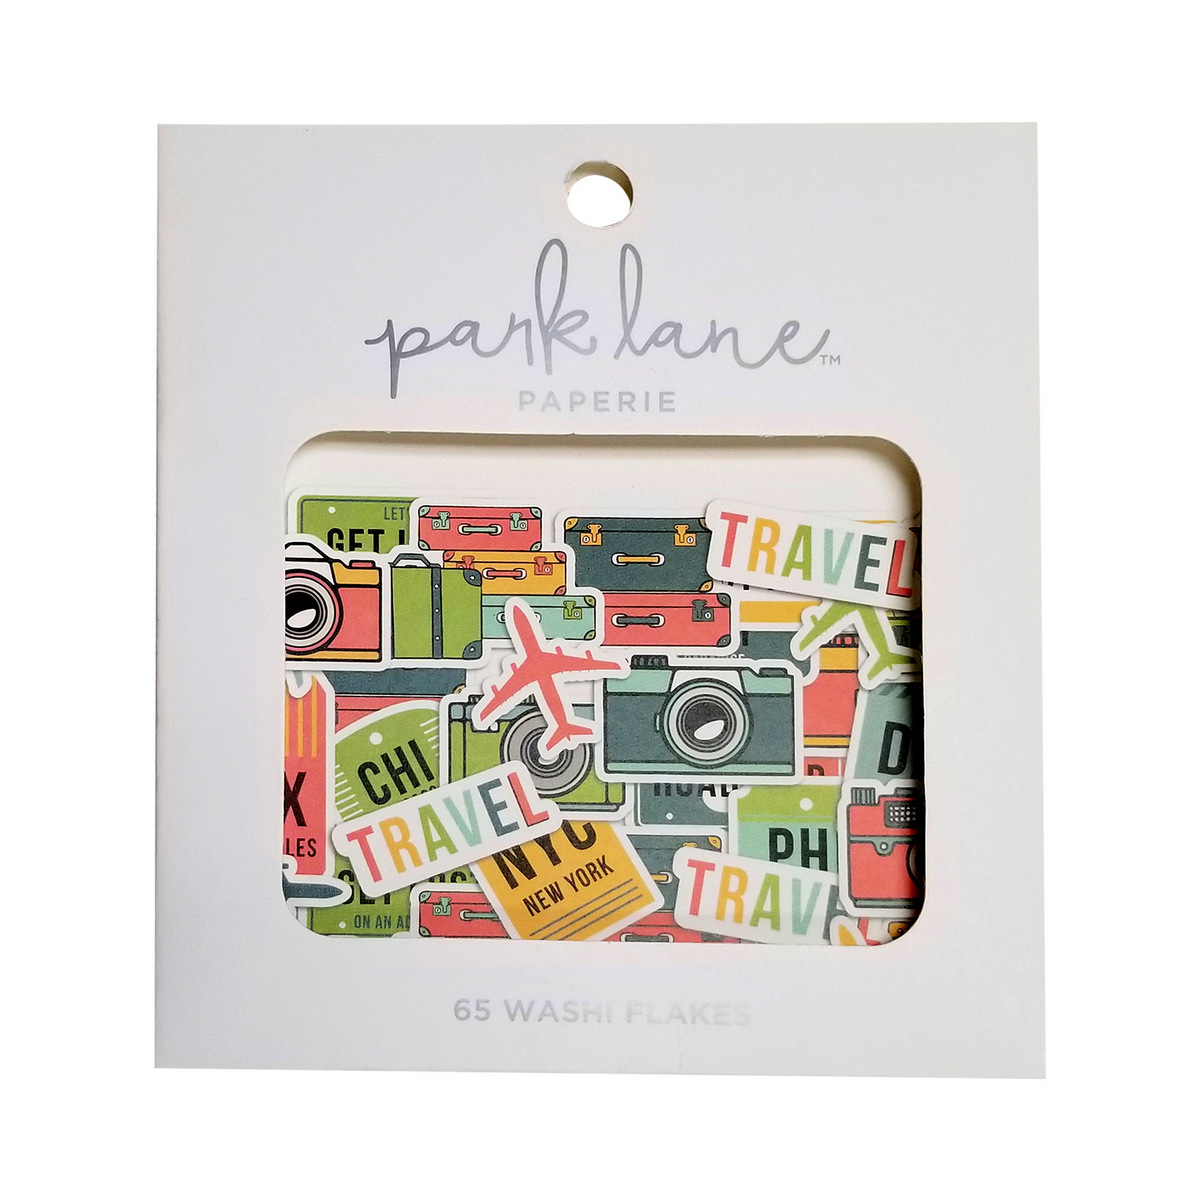 Planner Favorite Washi Flakes - Love these!